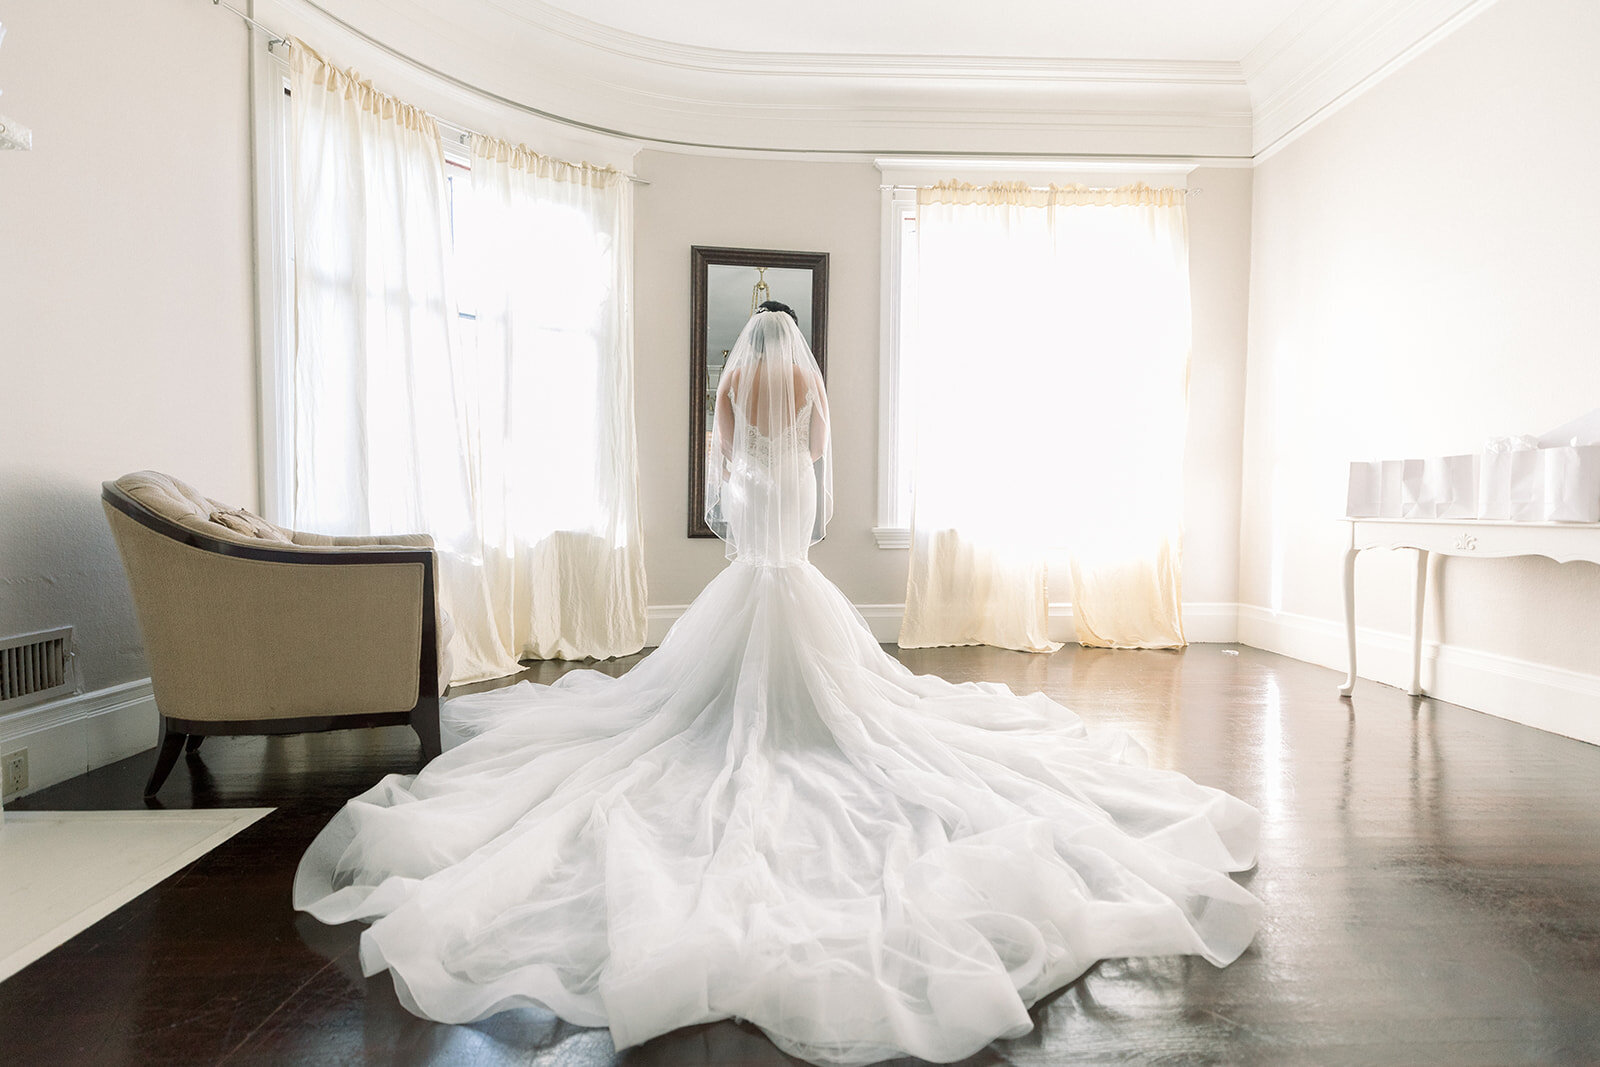 Bride's cascading train spills over the hardwood of the Bridal Suite on her big day.